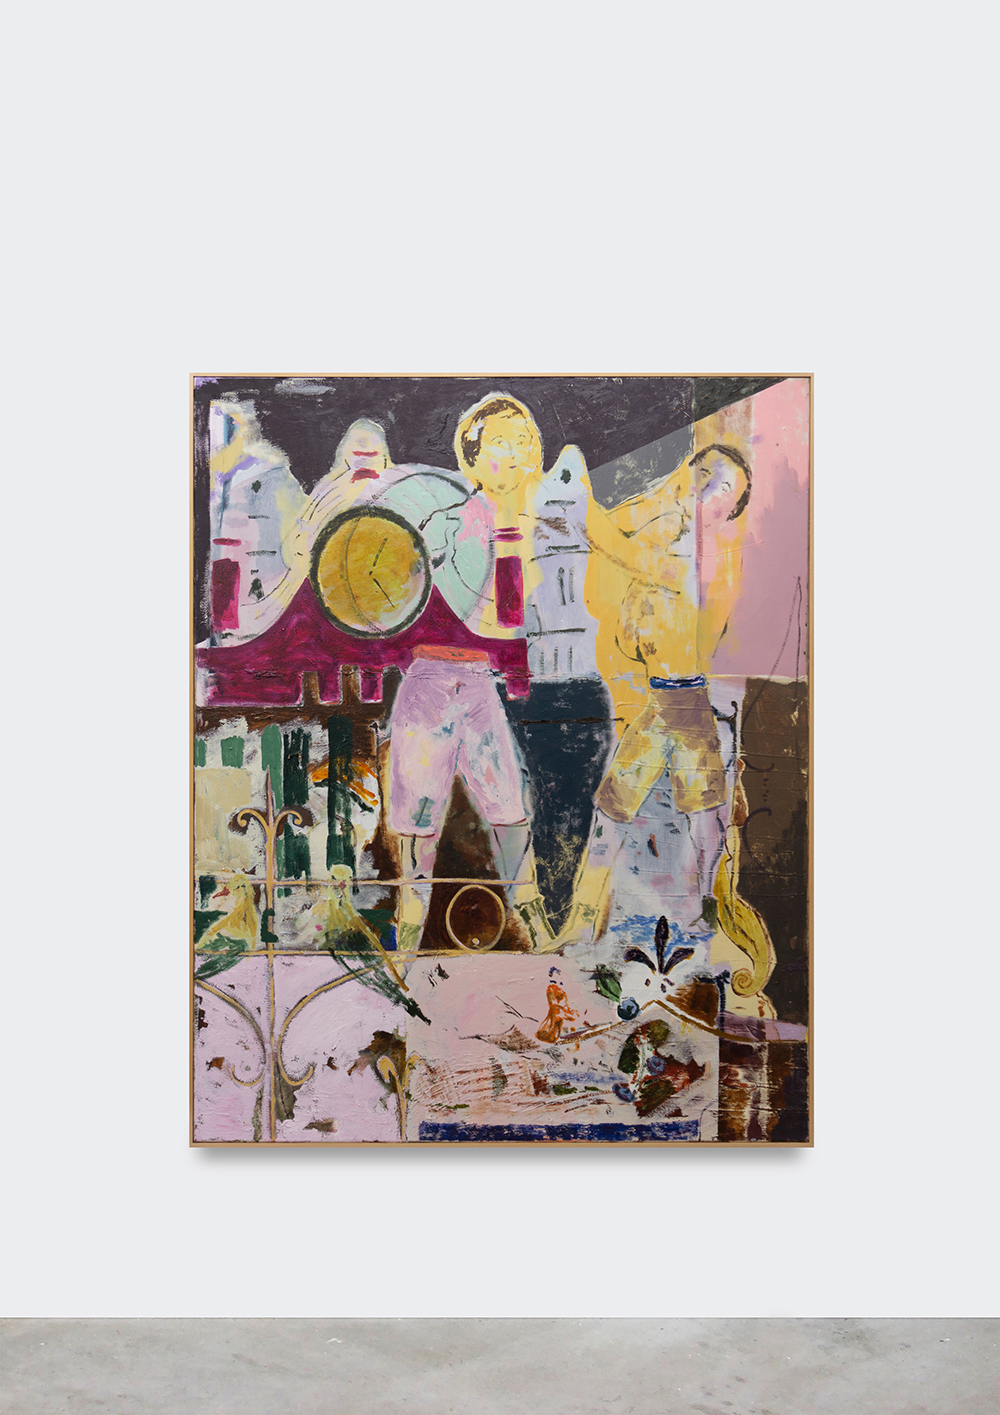 Jon Pilkington, Two cocks, two clocks (tower), 2019. Oil on canvas, 150 x 120 cm. Photo courtesy of V1 and the artist.